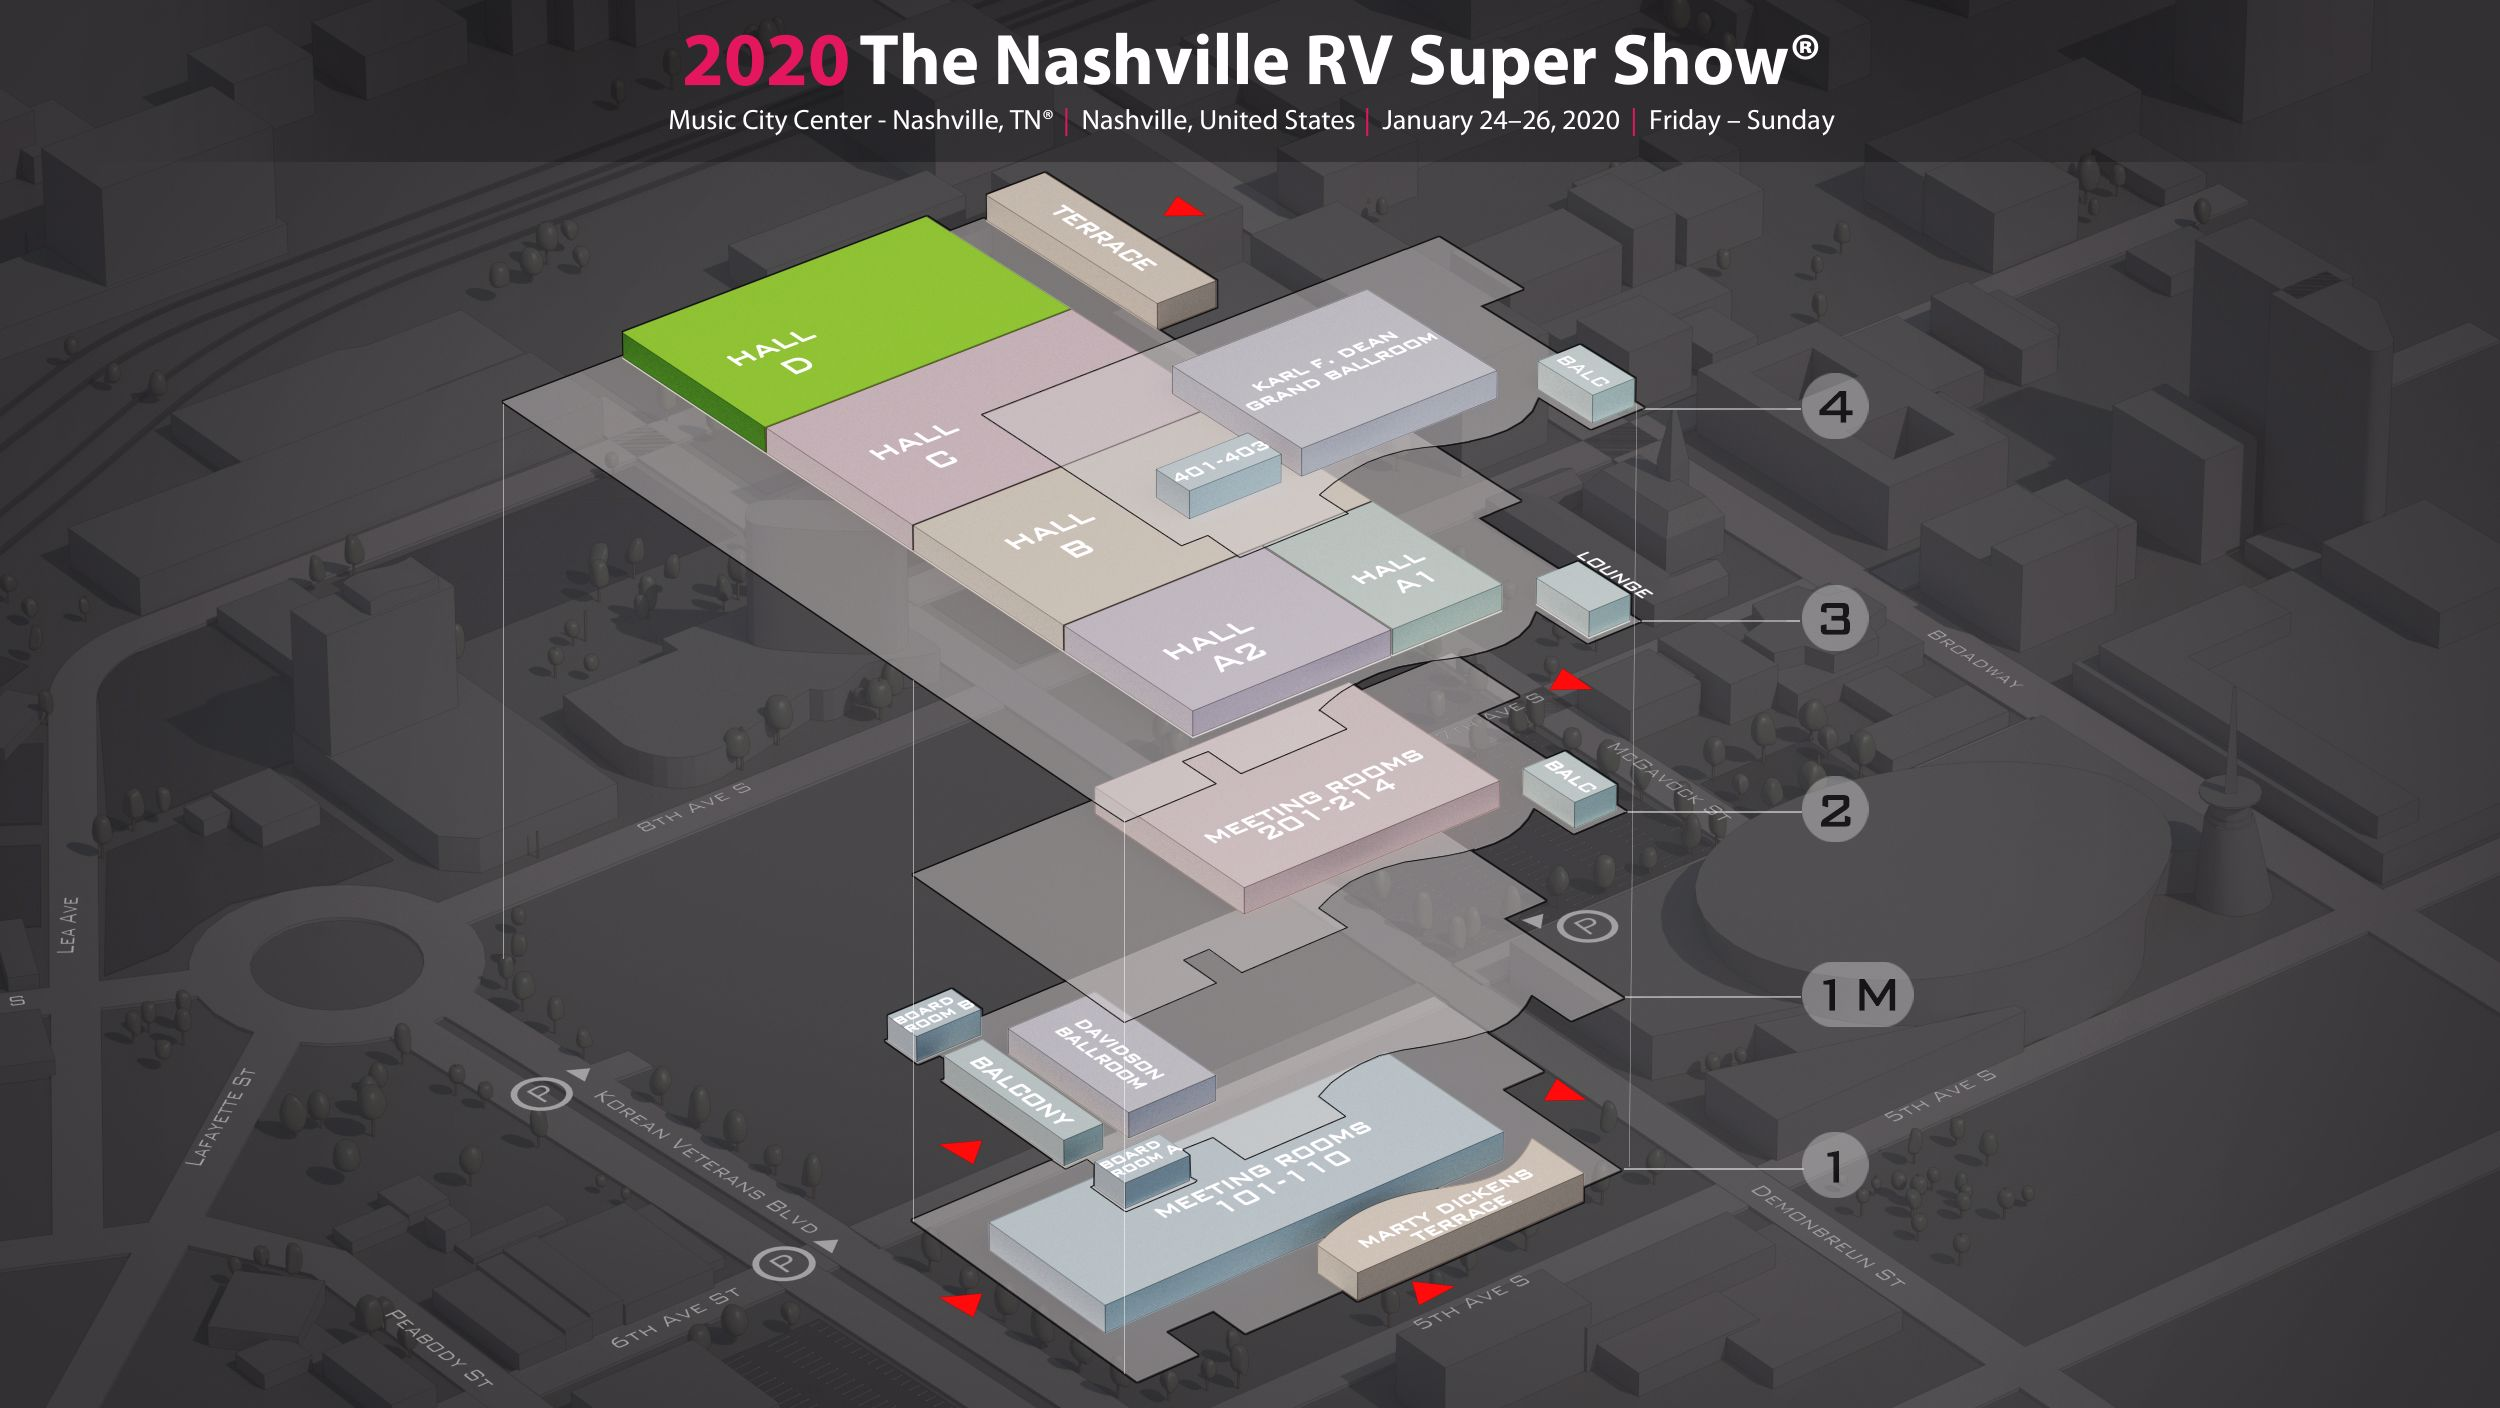 Las Vegas Rv Show 2020.The Nashville Rv Super Show 2020 In Music City Center